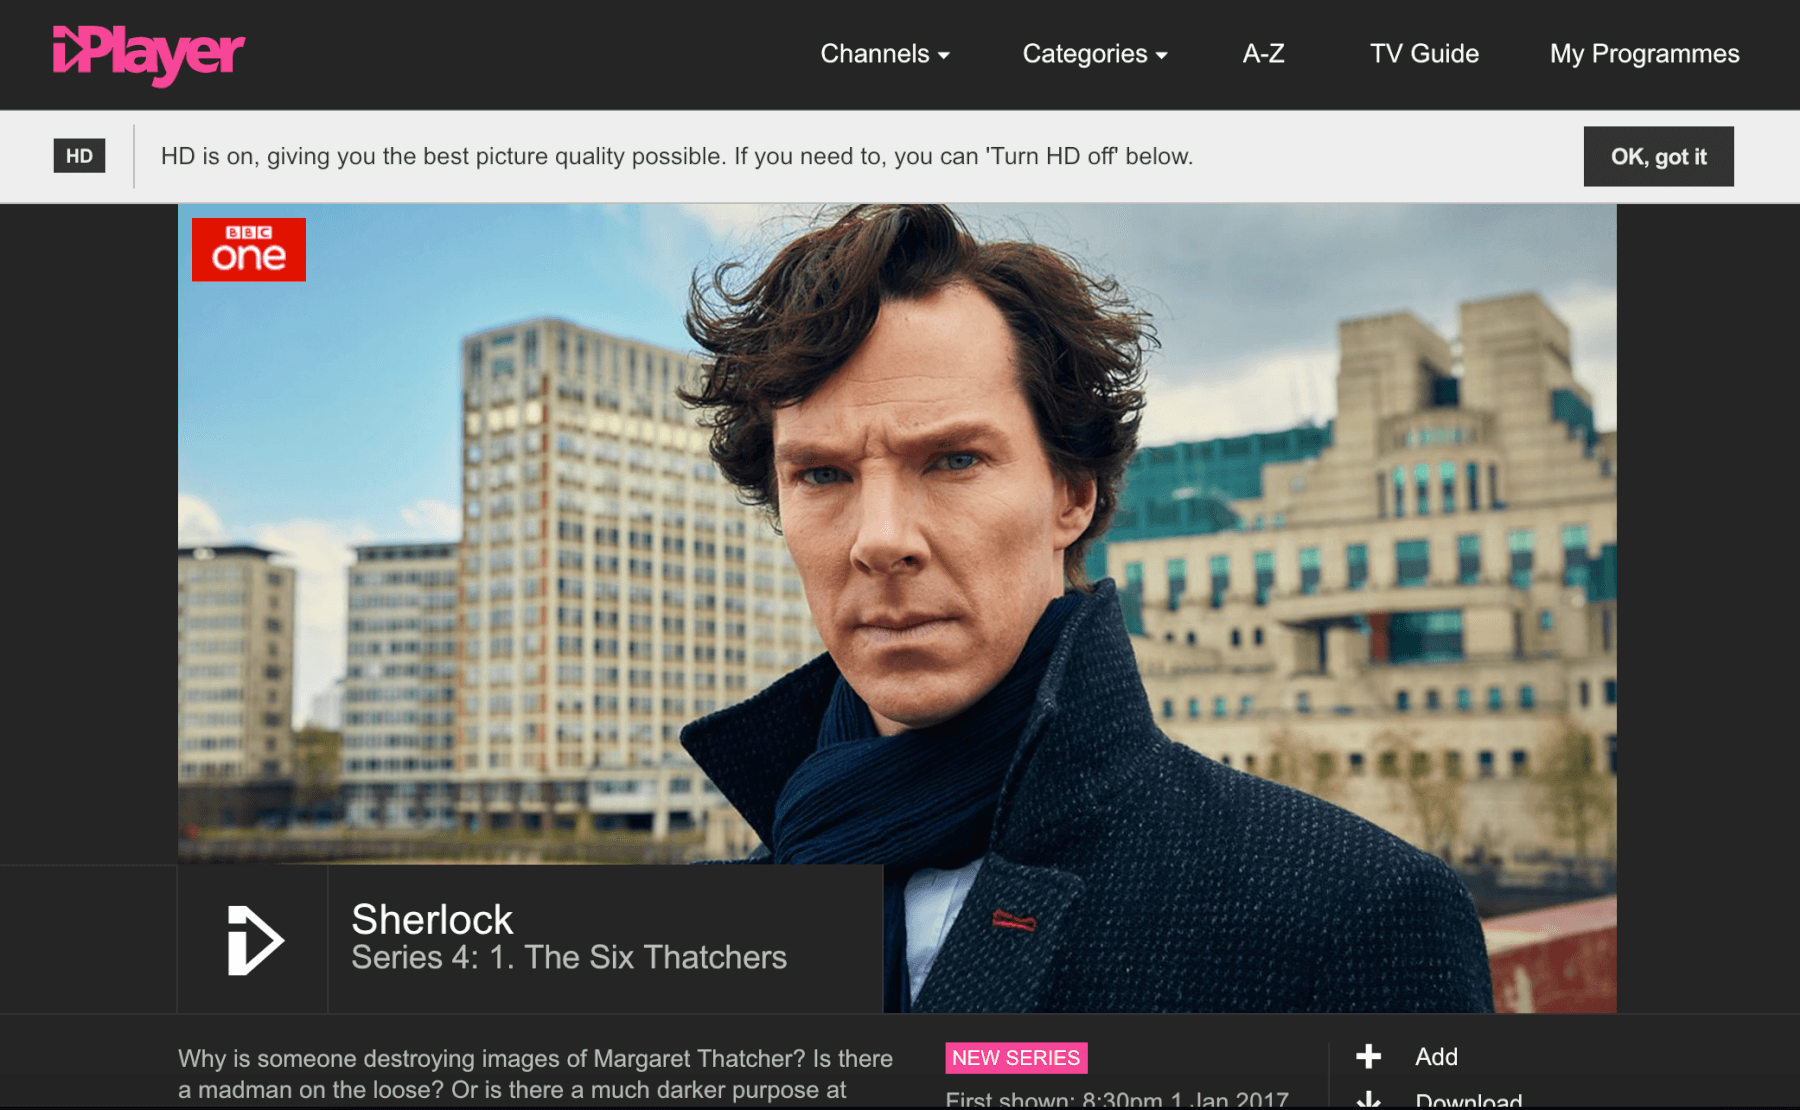 sherlock mini episode to air on christmas eve - Watch Sherlock Christmas Special